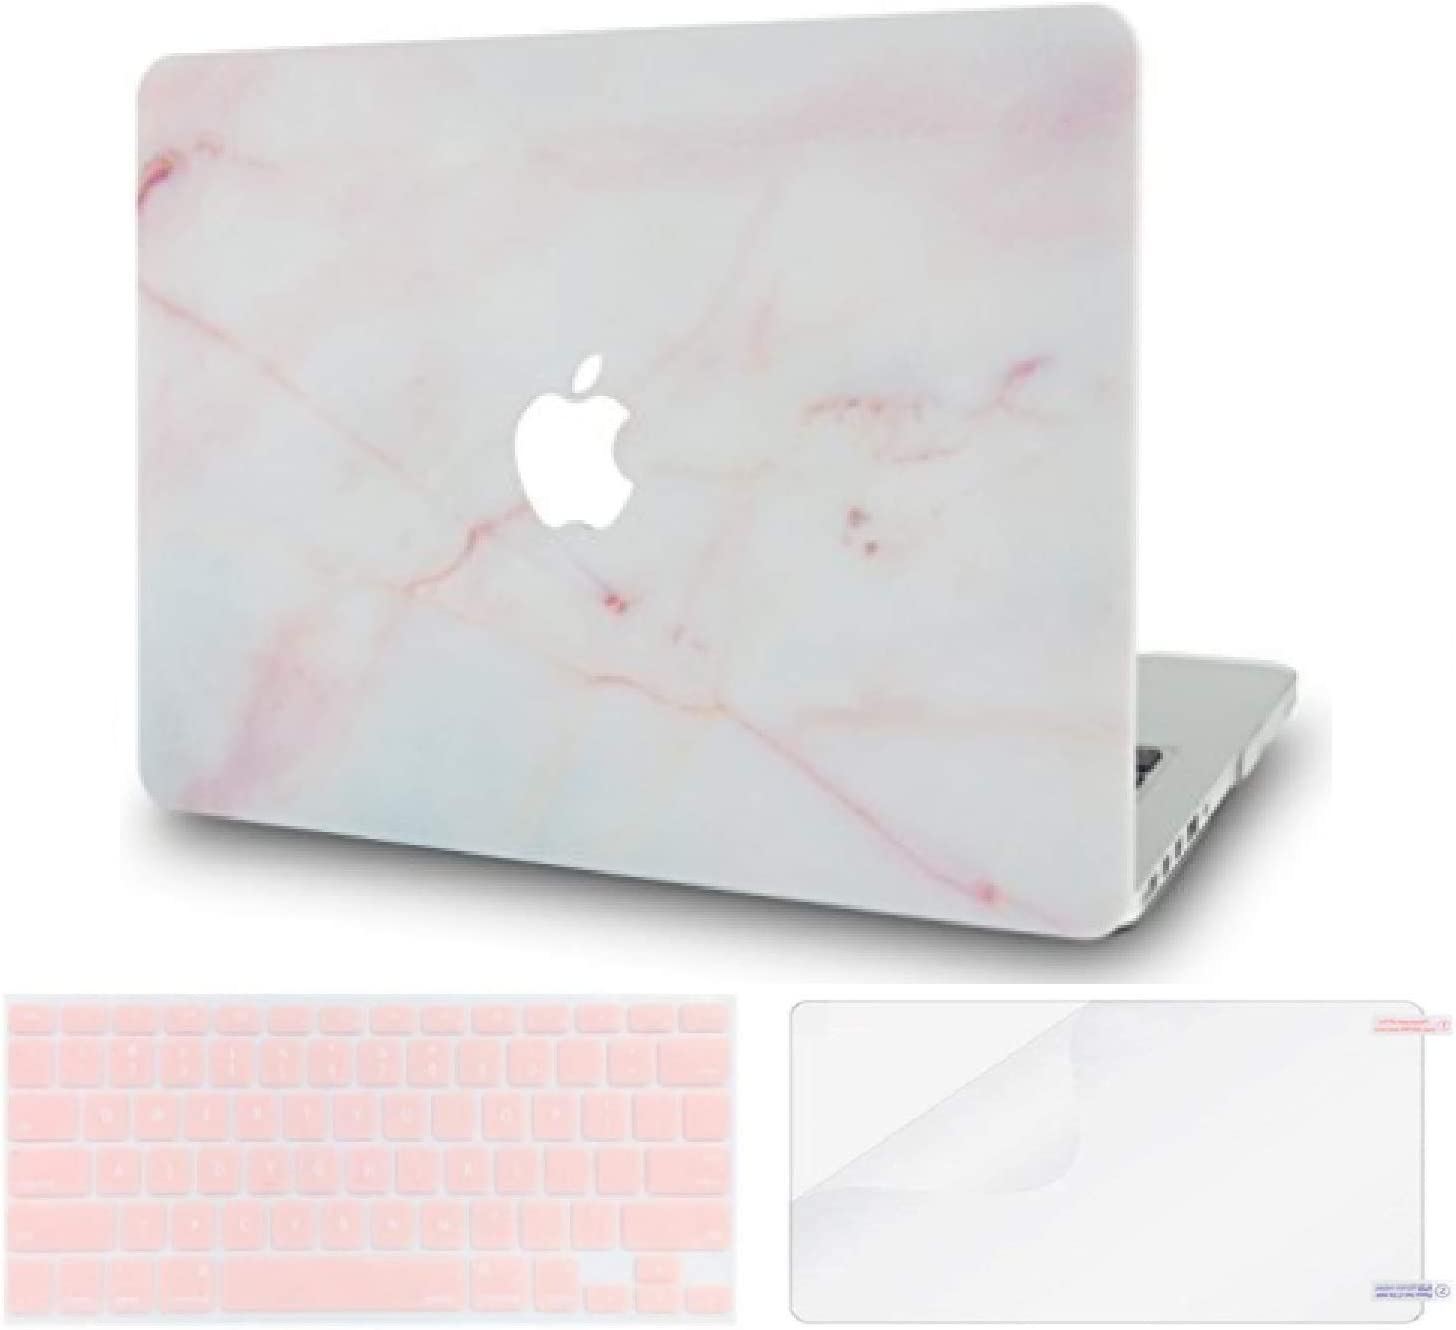 LuvCase 3 in 1 Laptop Case for MacBook Air 13 Inch (Touch ID)(2020/2019/2018) A2179/A1932 Retina Display Hard Shell Cover, Keyboard Cover & Screen Protector (Pink Marble)